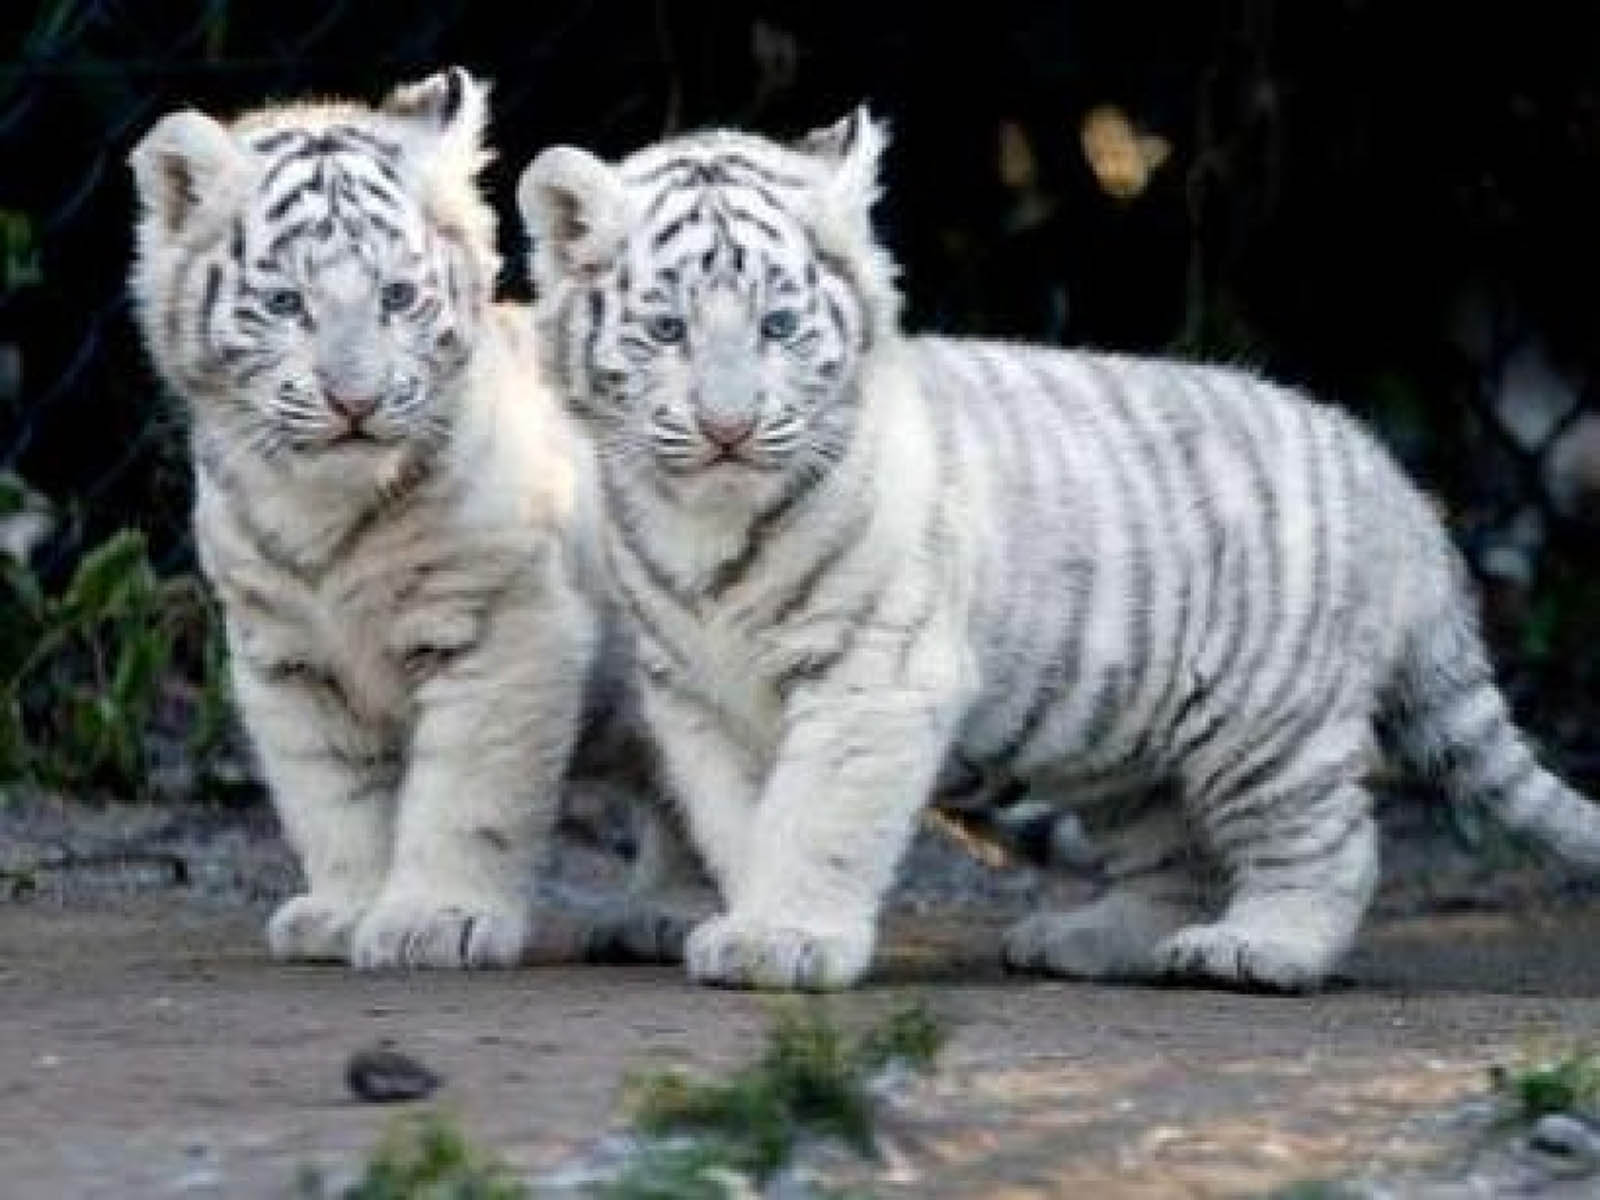 Baby White Tigers Wallpapers 2013 Wallpaper 1600x1200